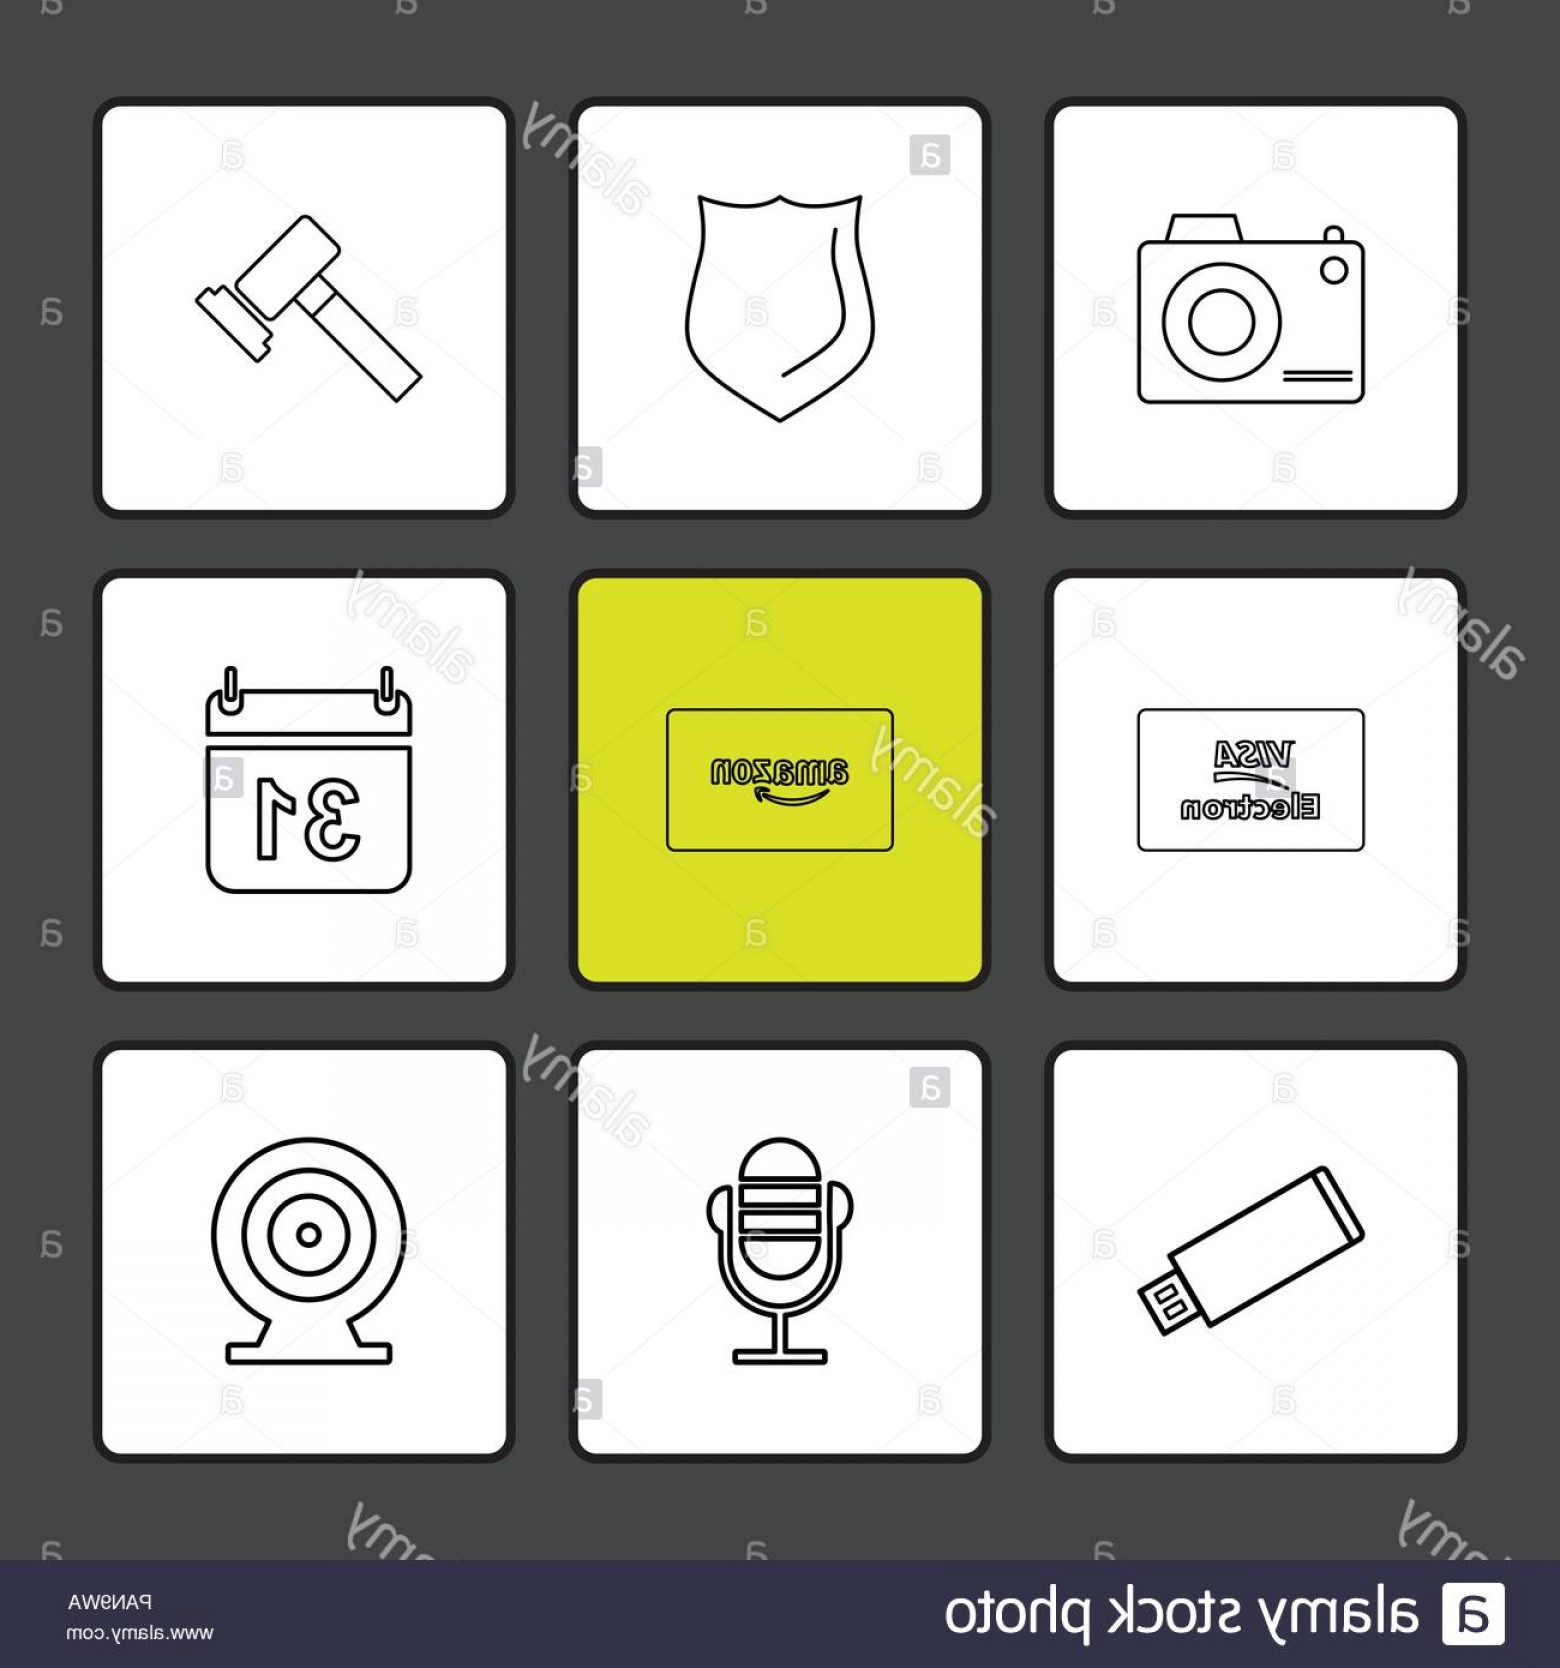 Amazon Icon Vector: Camera Sheild Hammer Calender Amazon Card Usb Microphone Dart Visa Icon Vector Design Flat Collection Style Creative Icons Image